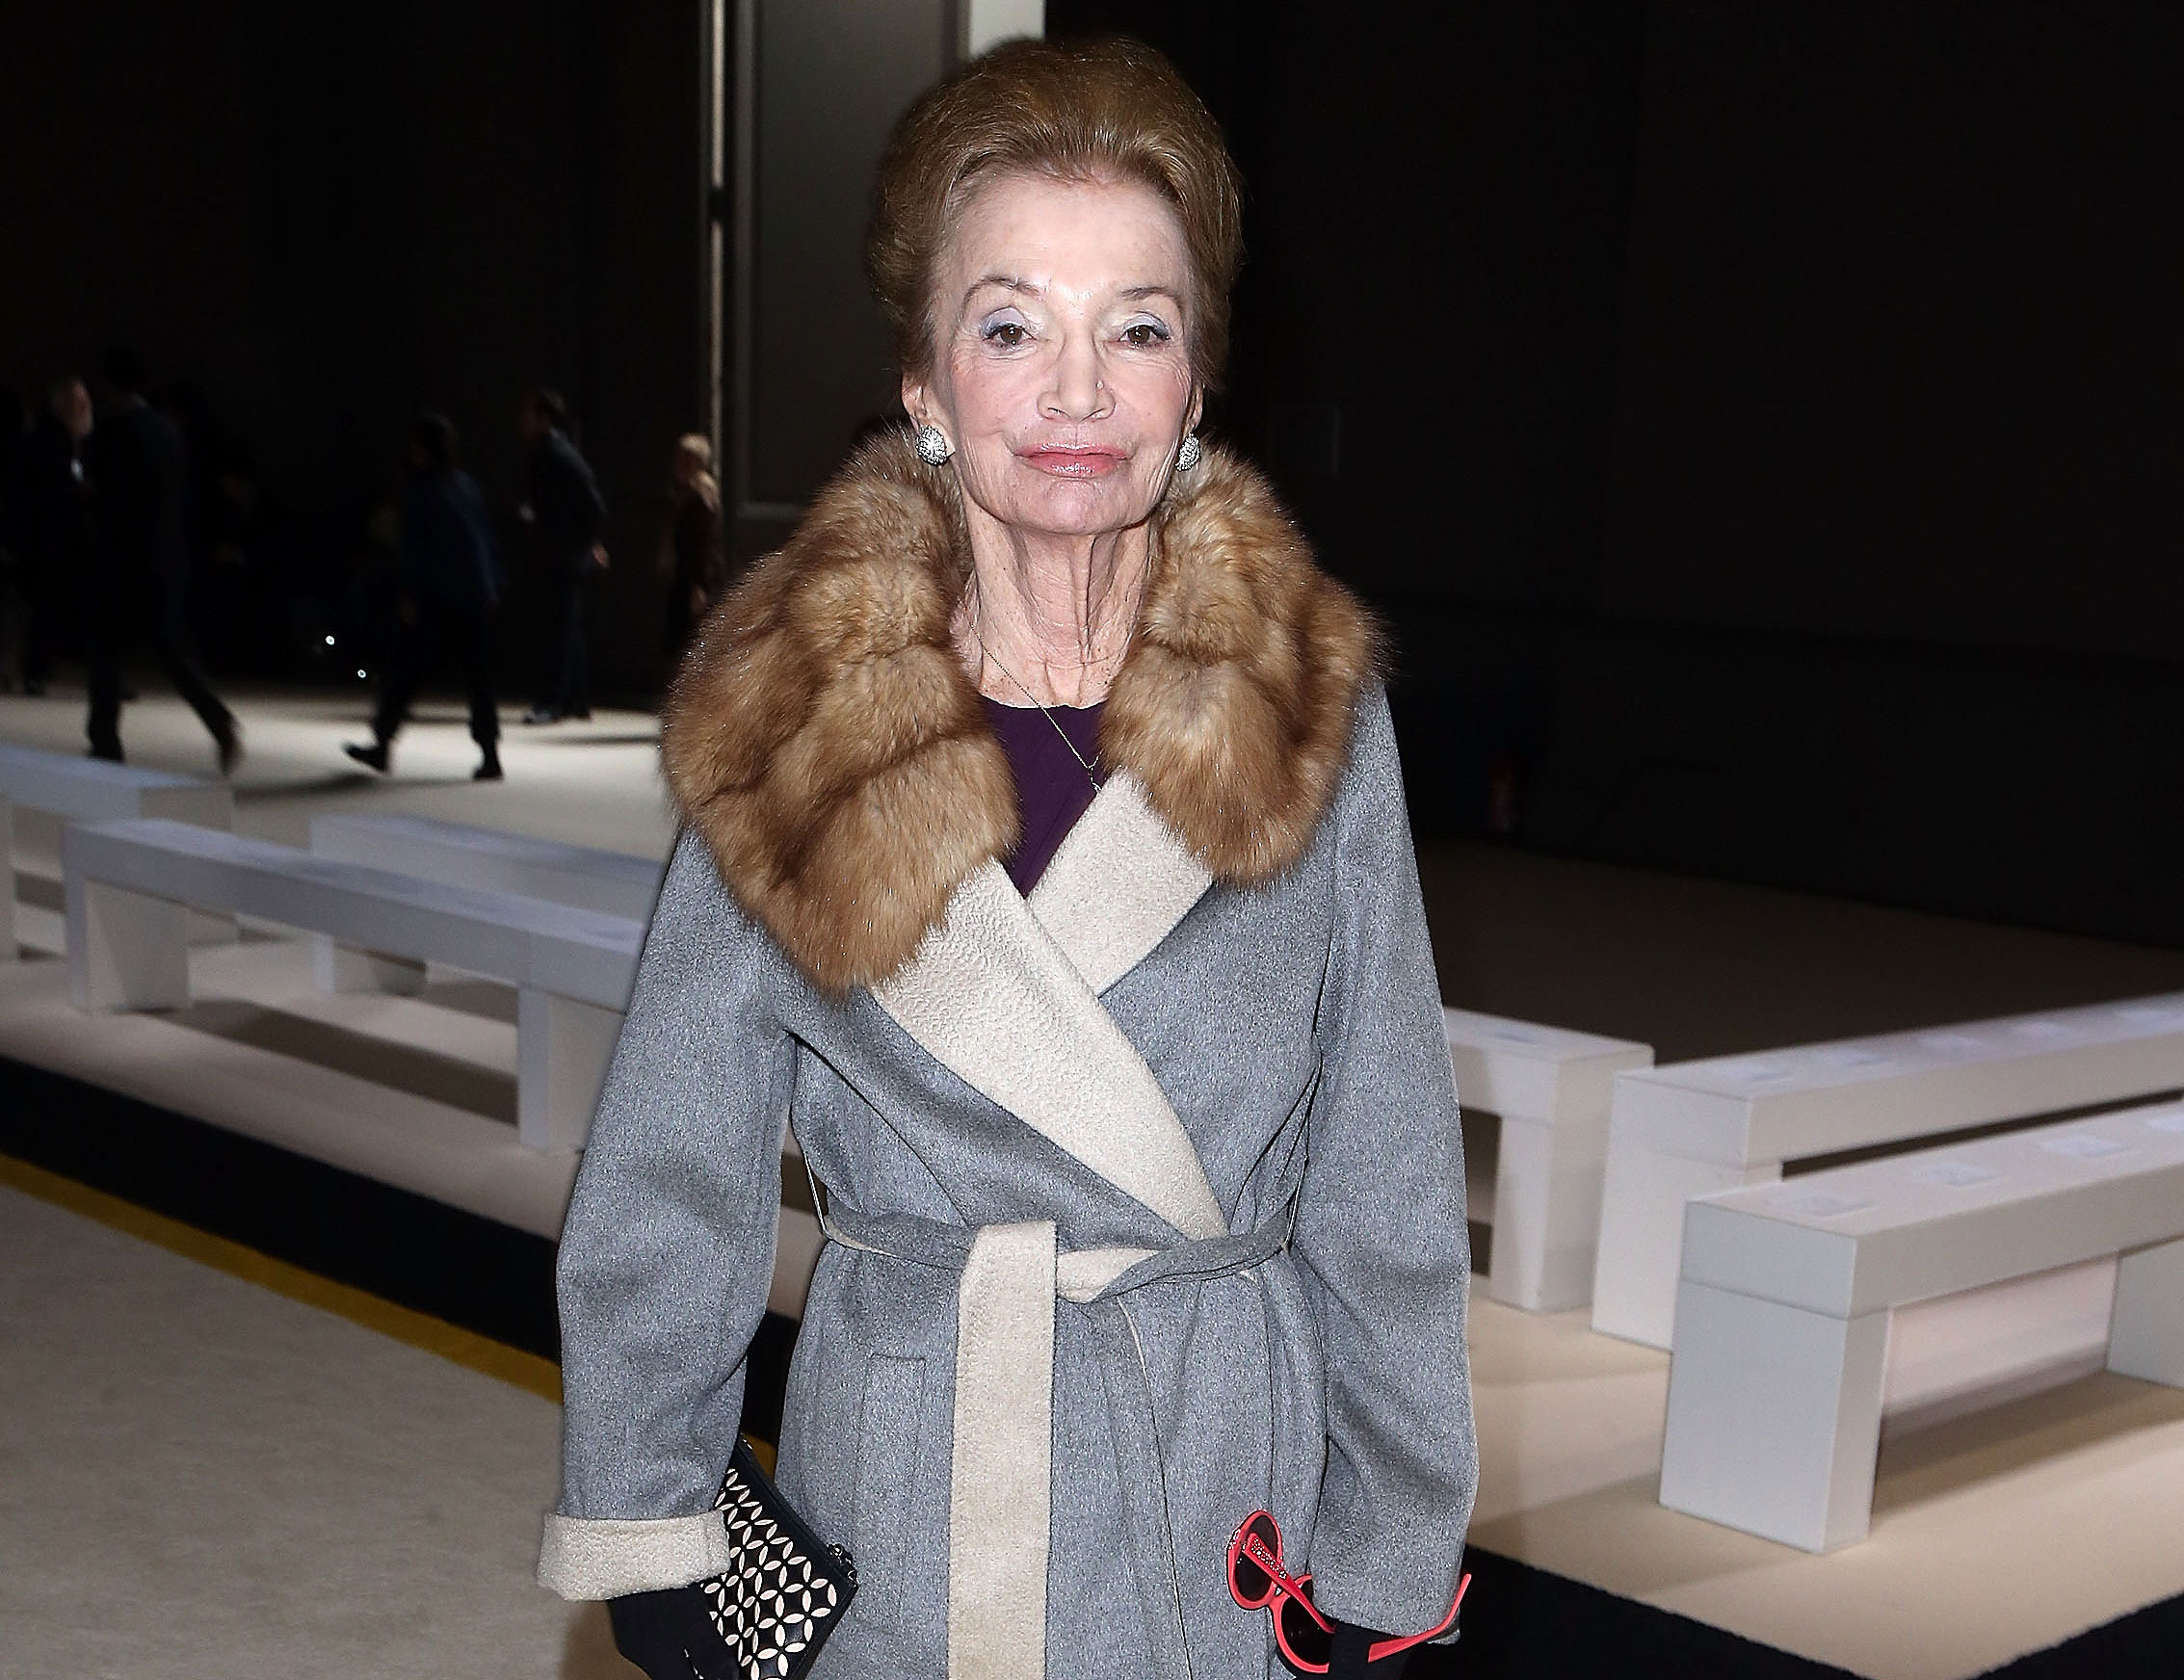 Lee Radziwill Dies, Jackie Kennedy's Sister Passes Away at